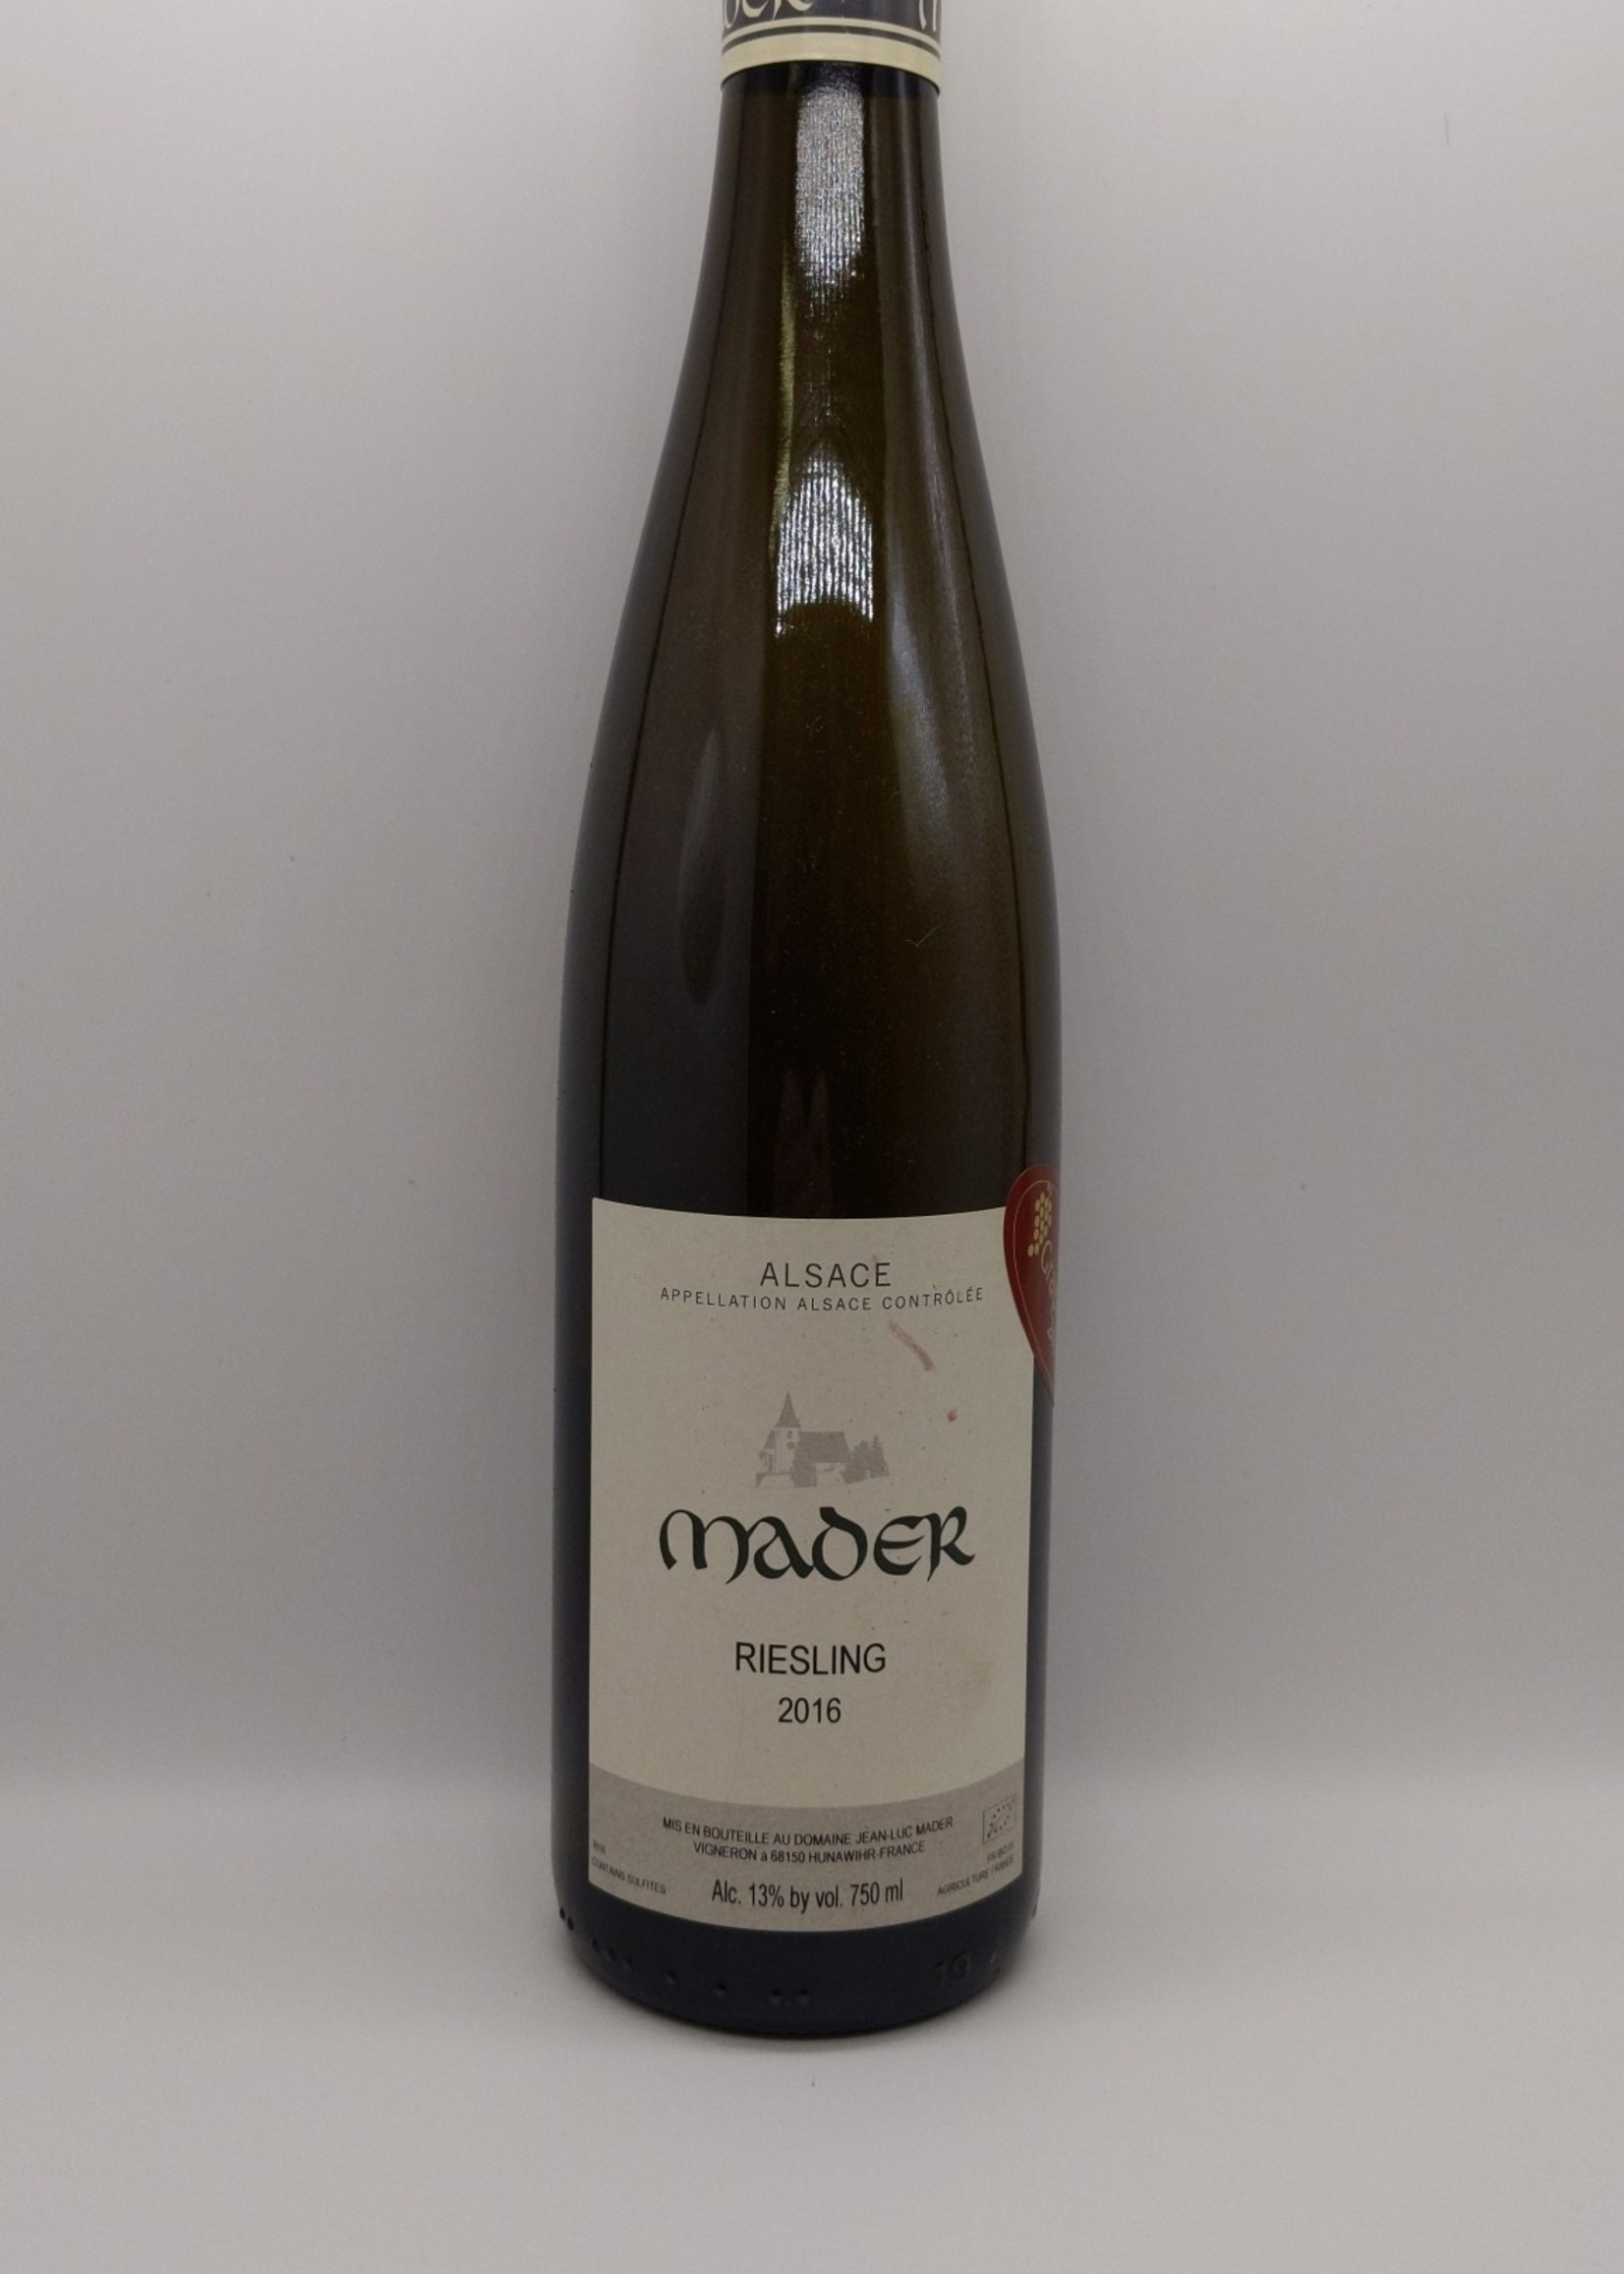 2018 JEAN LUC MADER ALSACE RIESLING 750ml